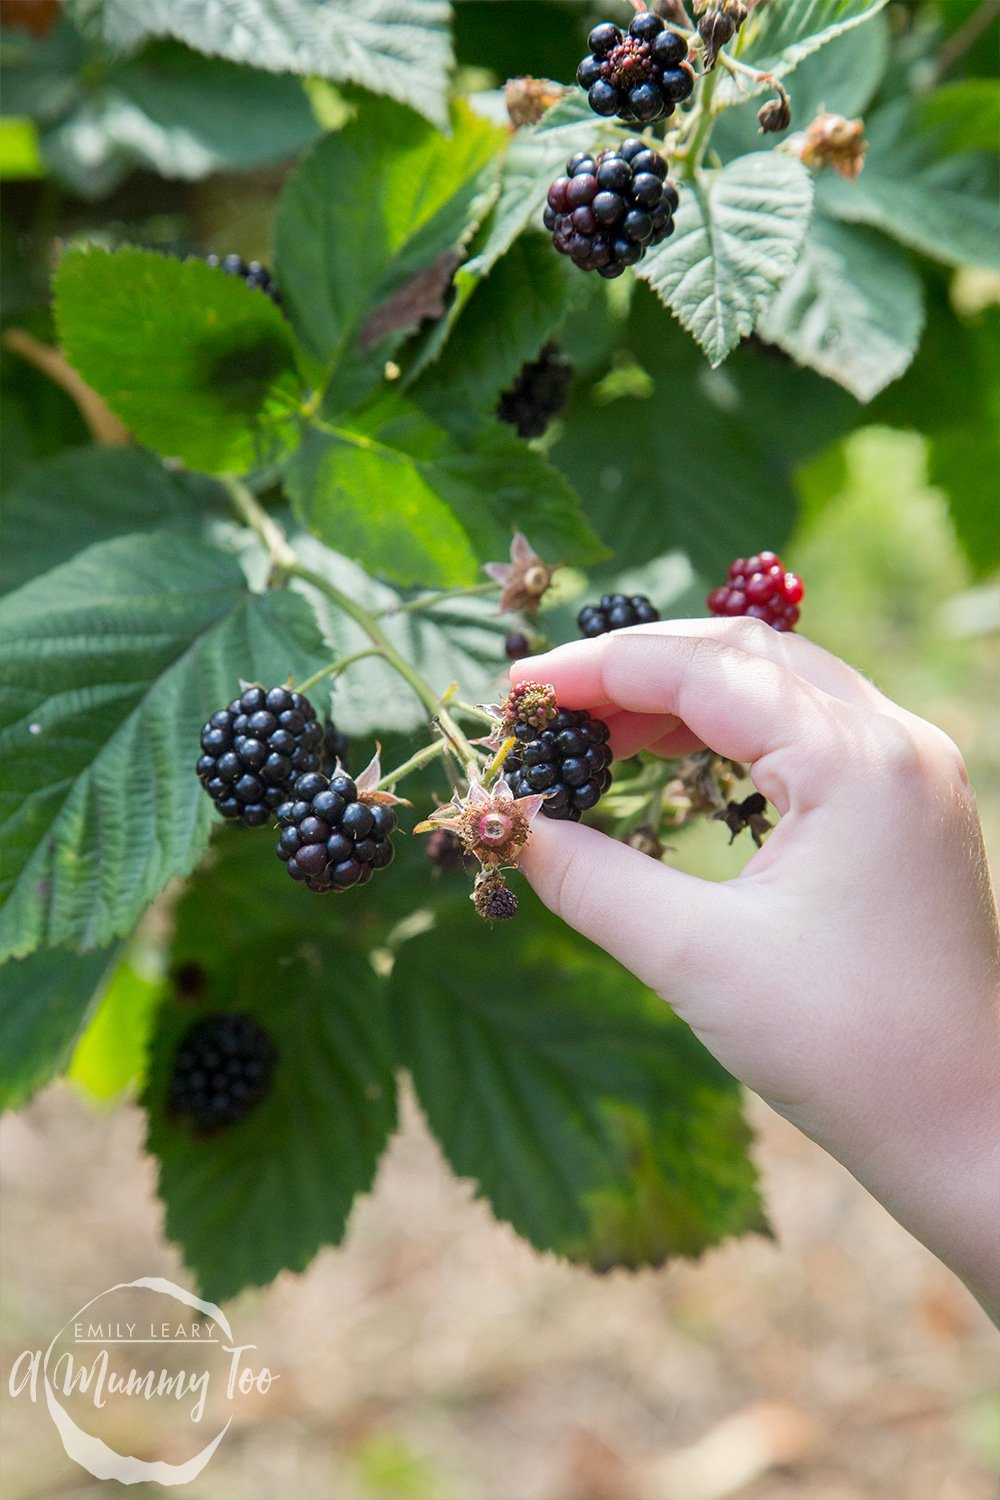 Picking blackberries at a 'pick your own' farm